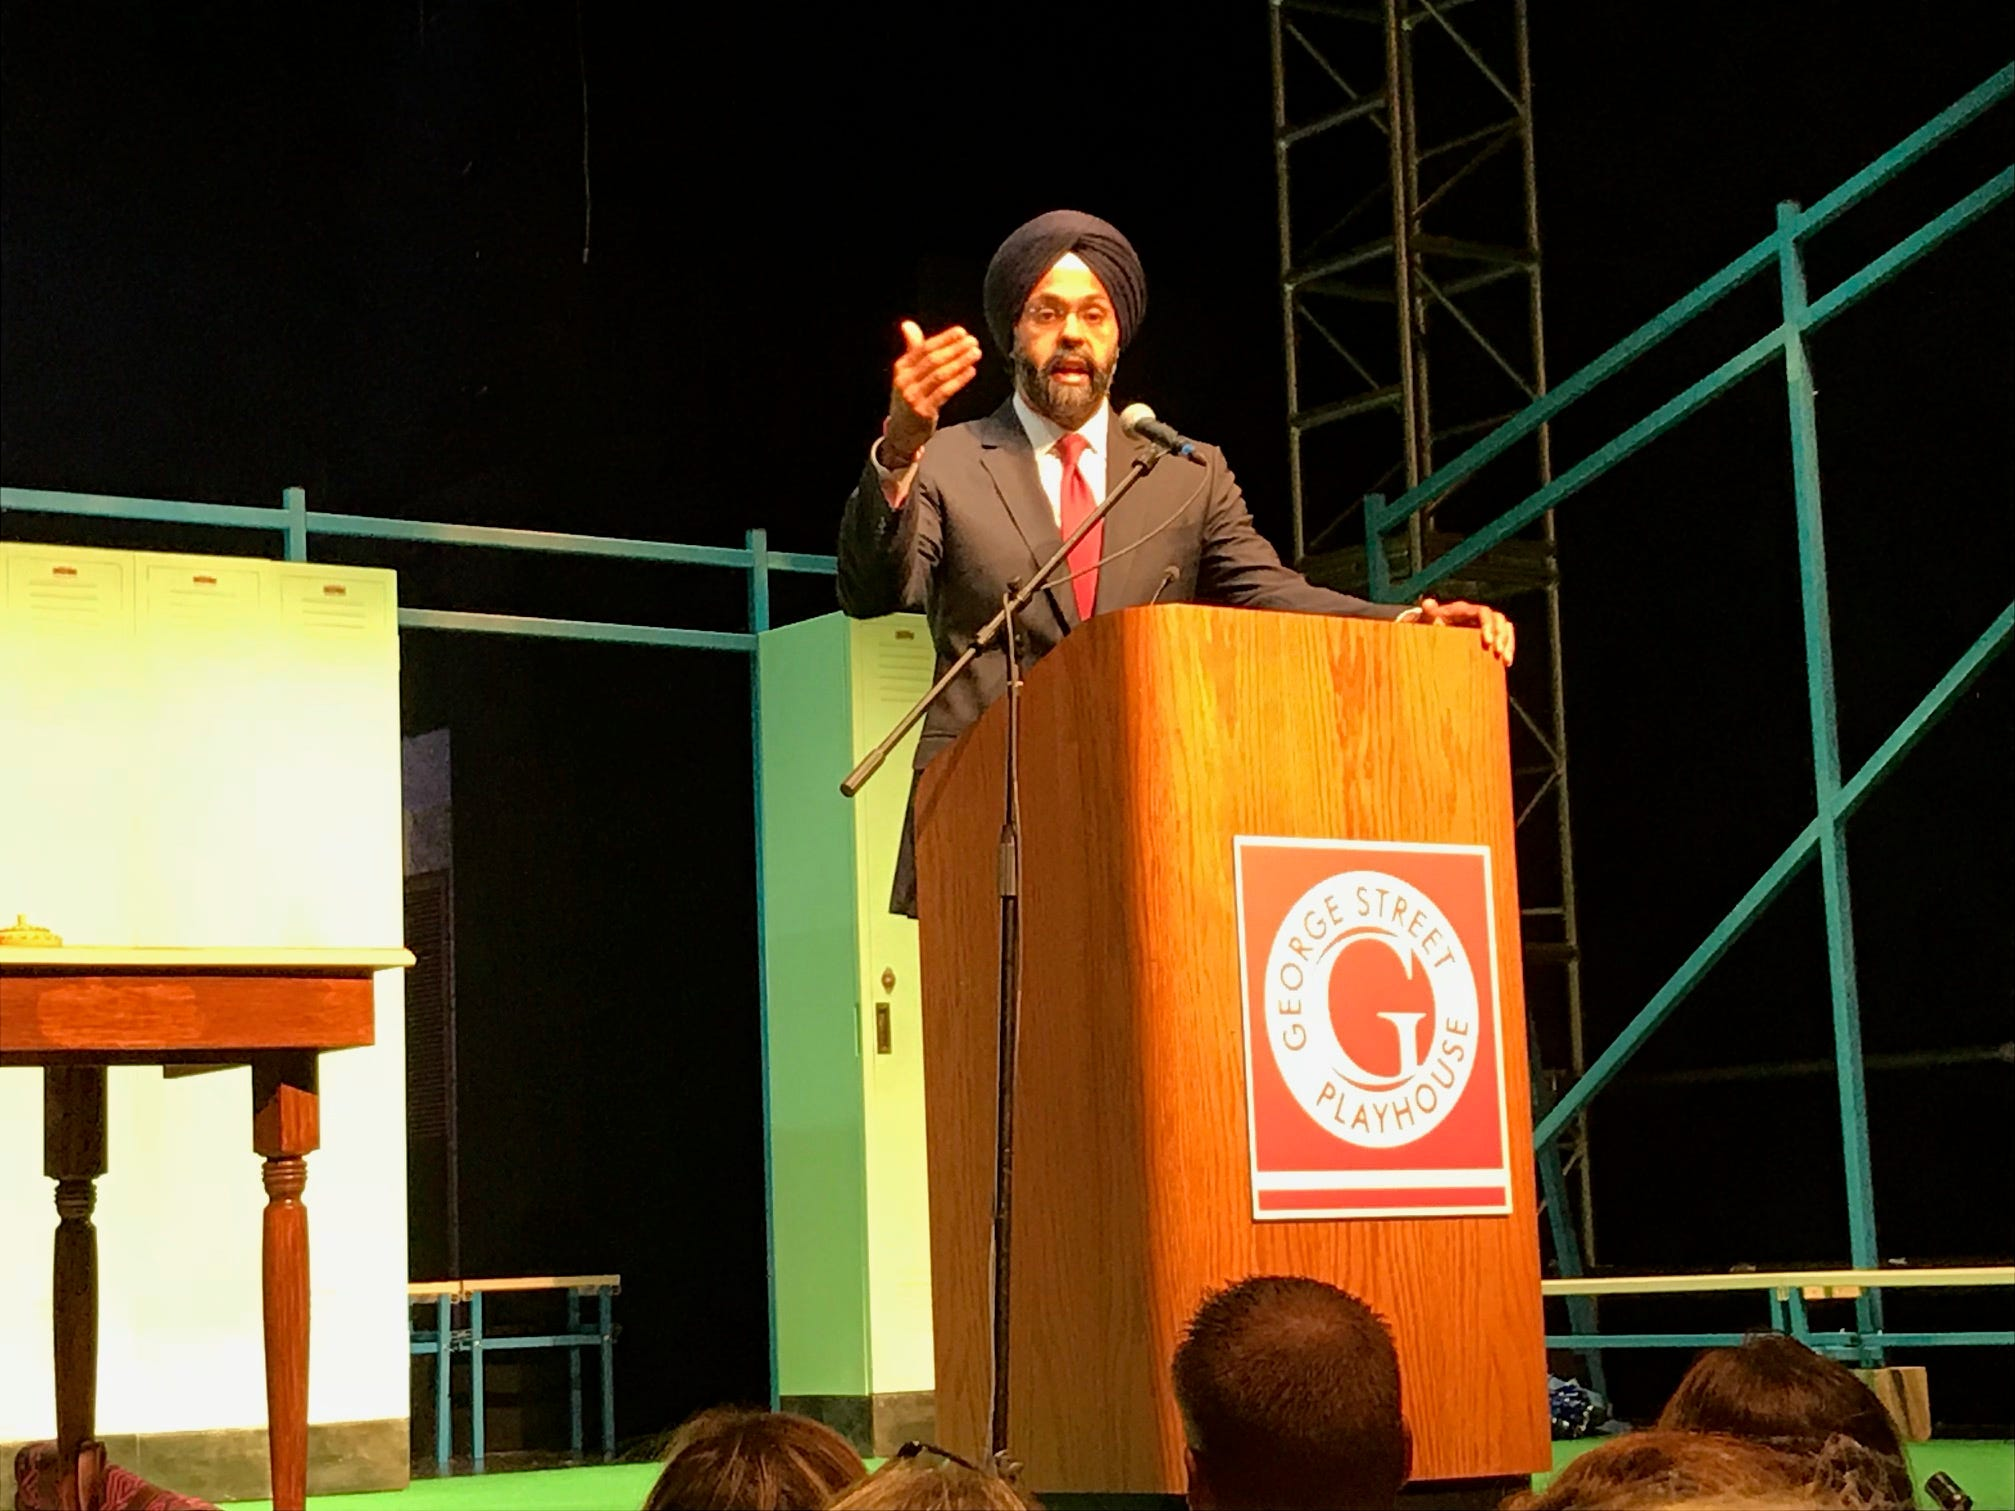 "State Attorney General Gurbir S. Grewal delivered the keynote address at the day-long Spotlight Conference on Opioid Abuse on Sept. 25 in which he unveiled new data on the opioid epidemic's impact on the state. Before a full house of educators, administrators and public health addiction professionals, George Street Playhouse in New Brunswick, who hosted the conference, premiered ""Anytown,"" their new original educational musical targeted at a middle and high school student audience."